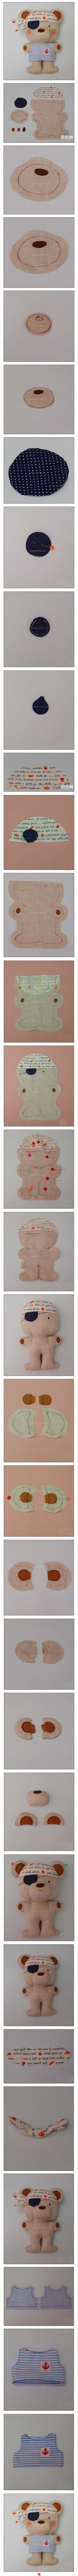 Sew your own teddy bear! This is adorable.